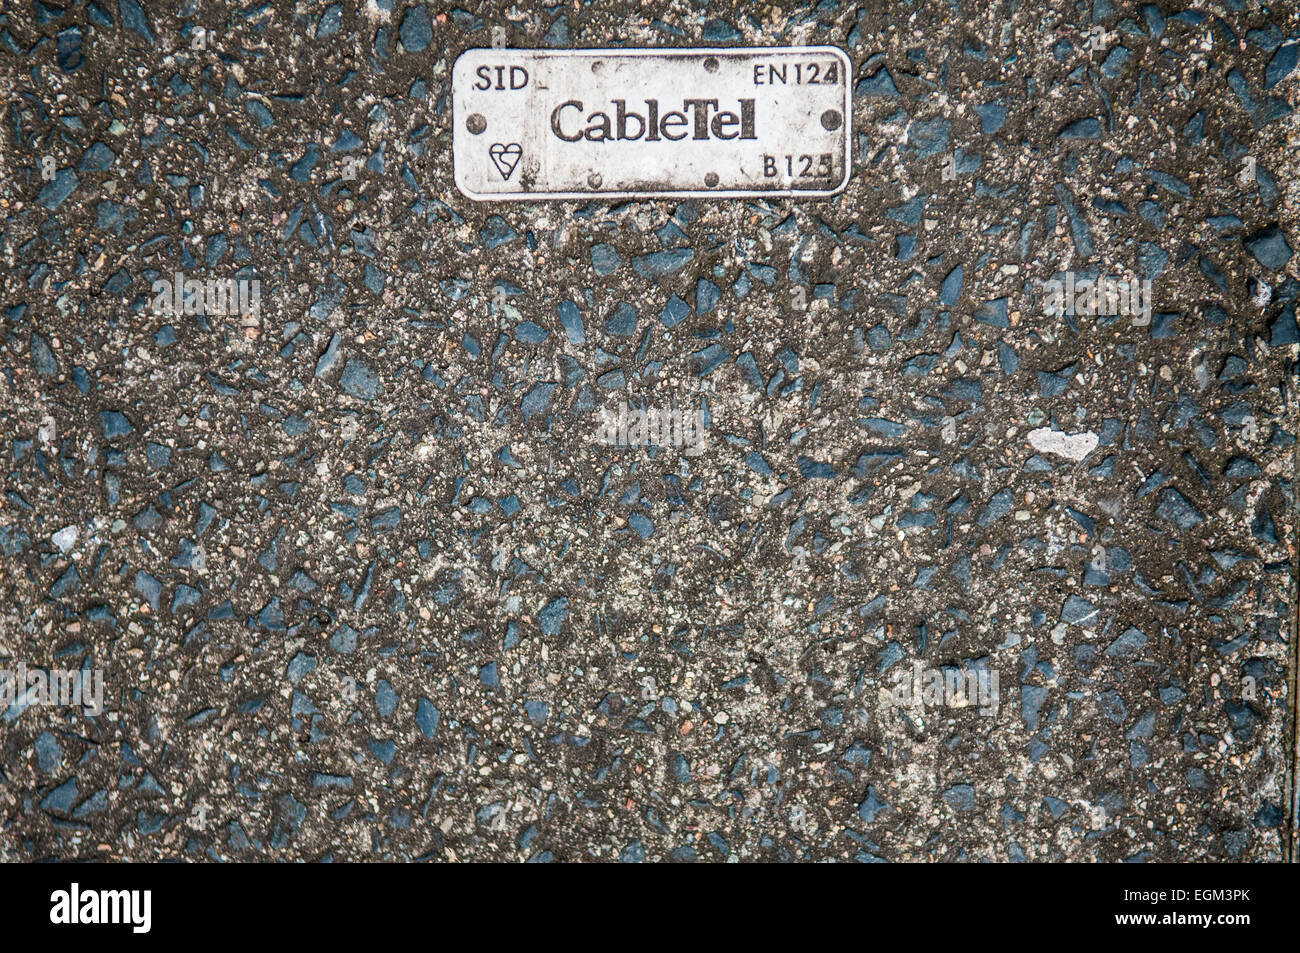 CableTel badge on a manhole cover - Stock Image